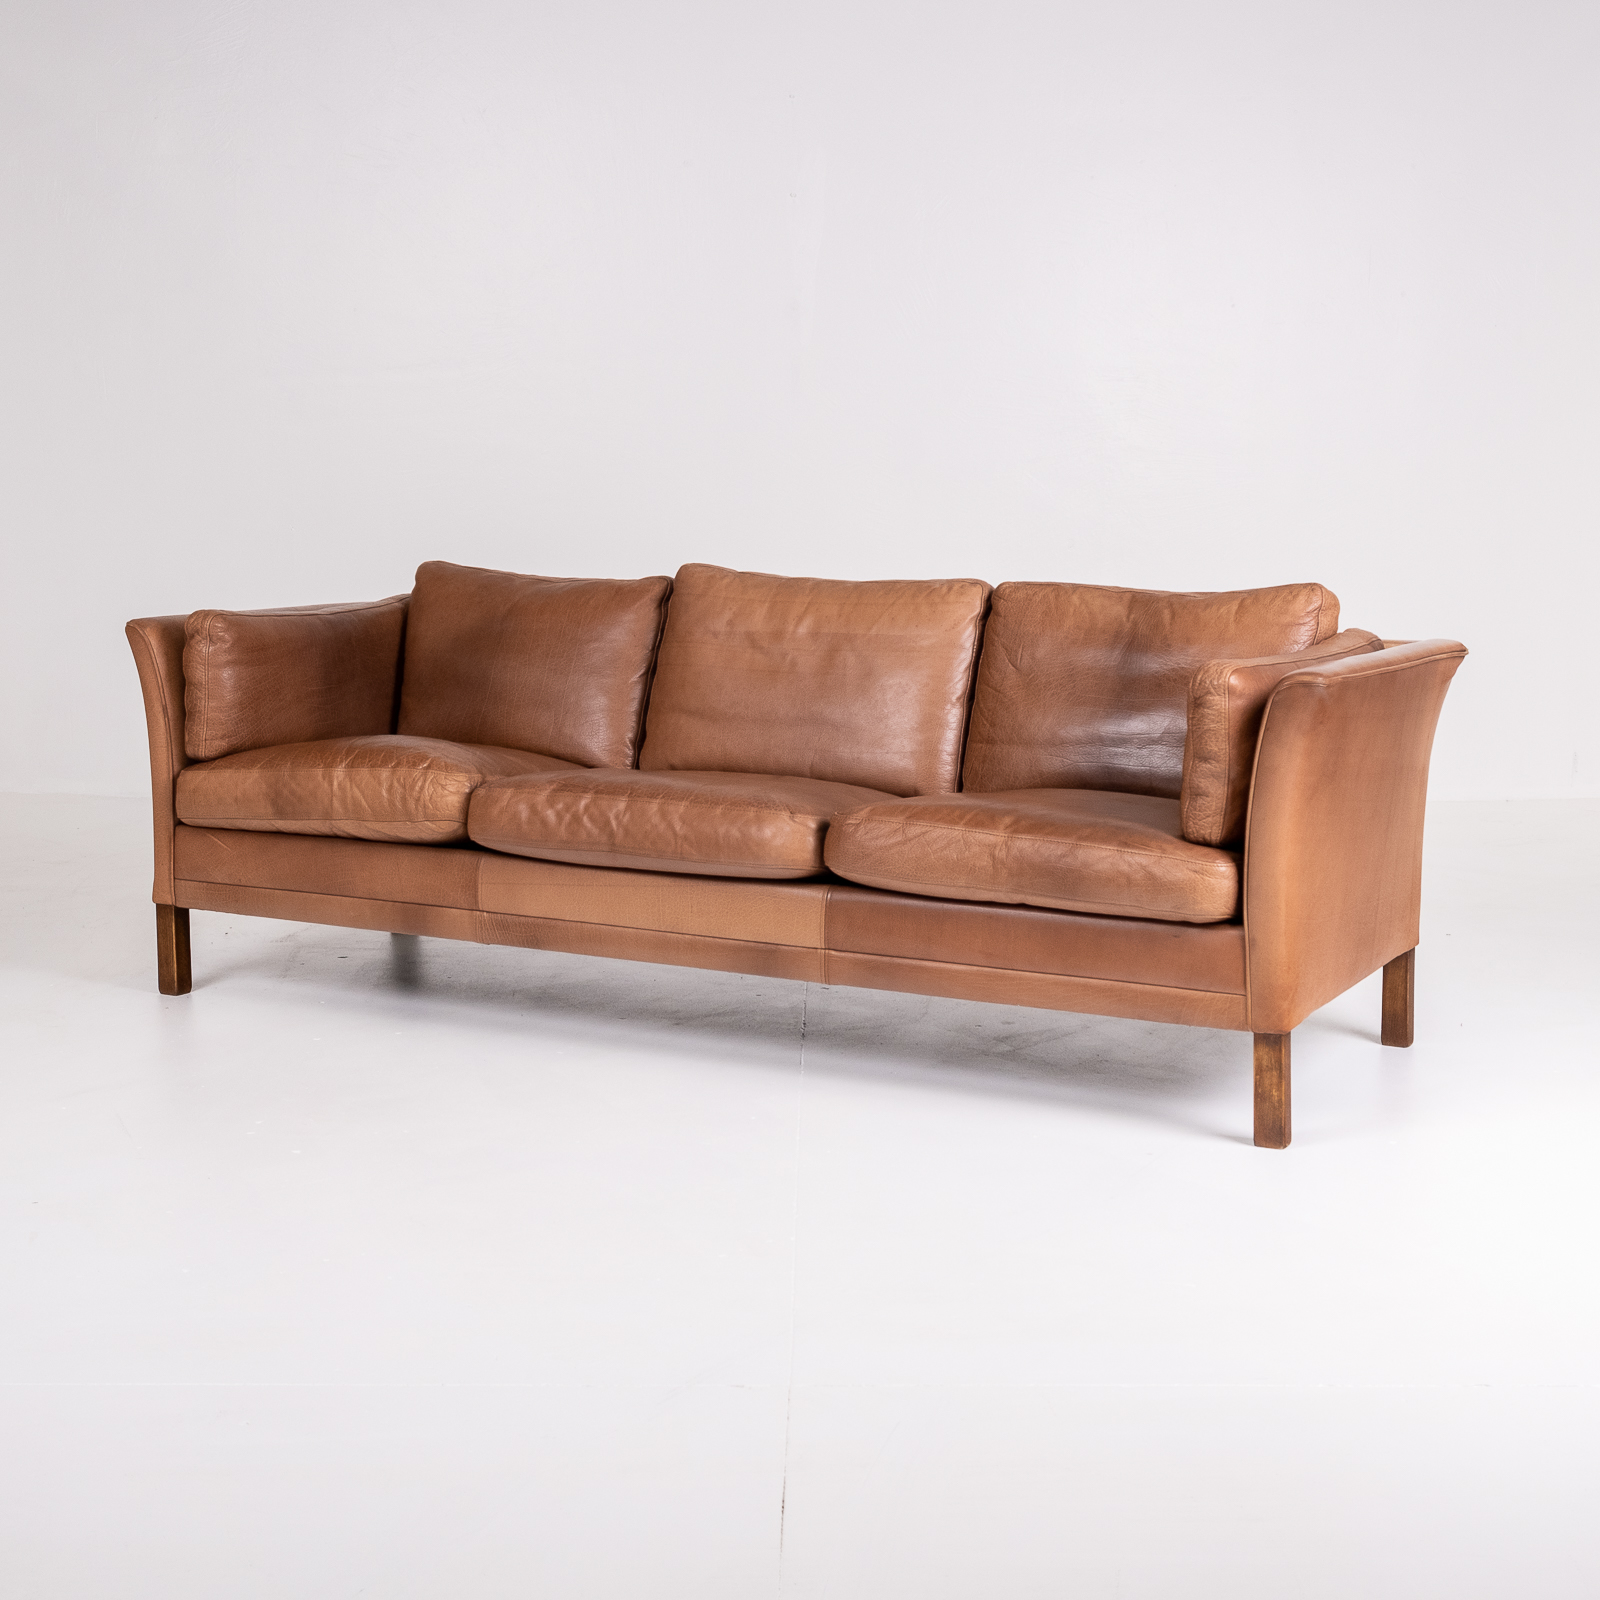 3 Seat Sofa In Brown Leather, 1960s, Denmark02